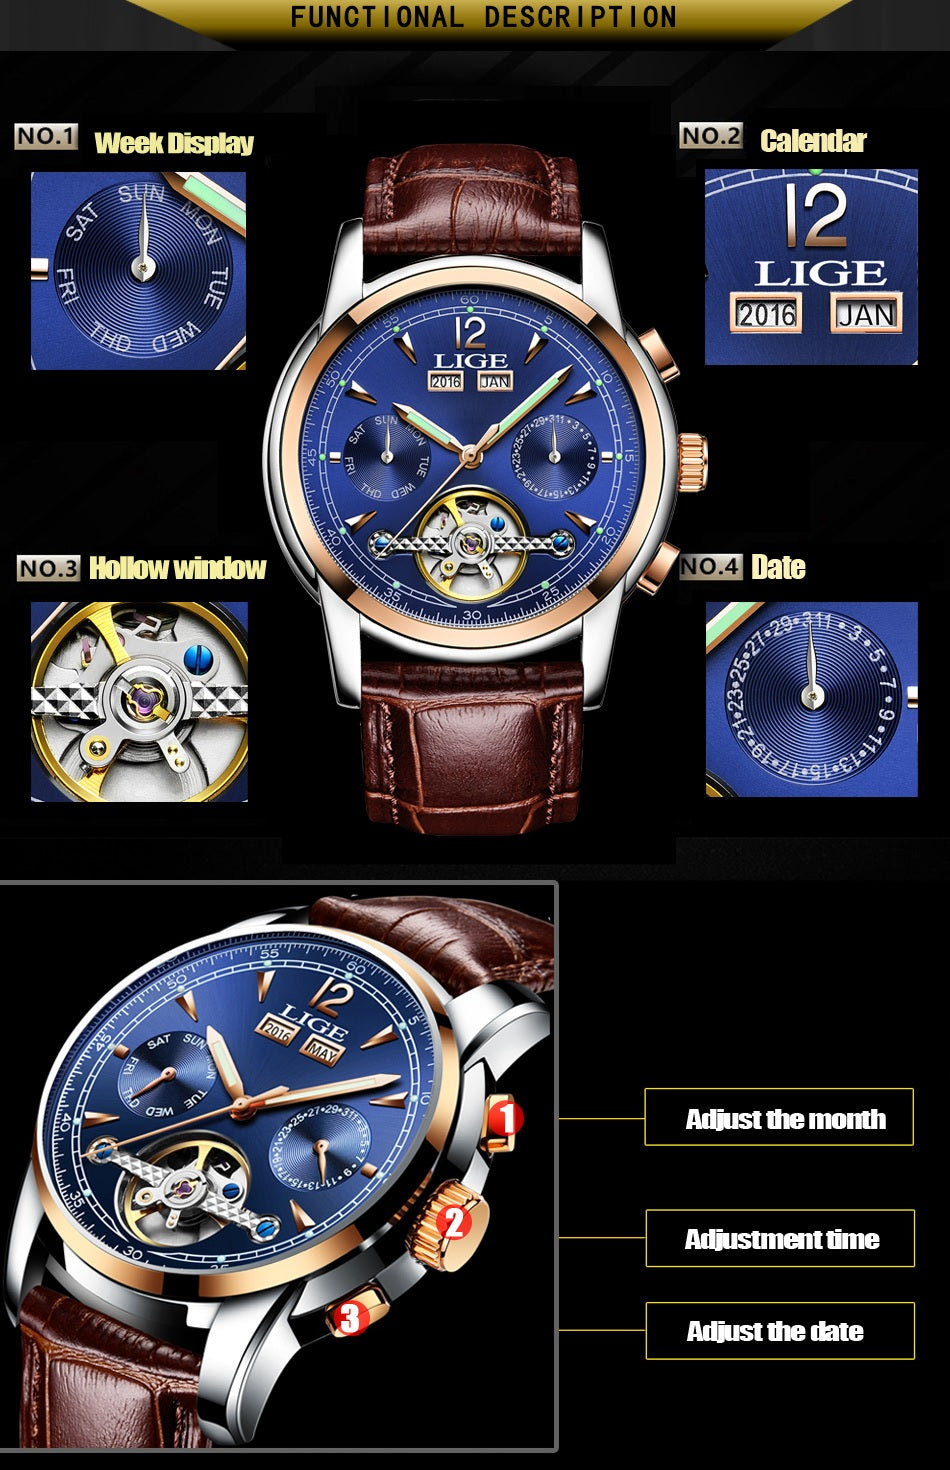 Ares - Mechanical Watch | Stigma Watches™ - Online Store